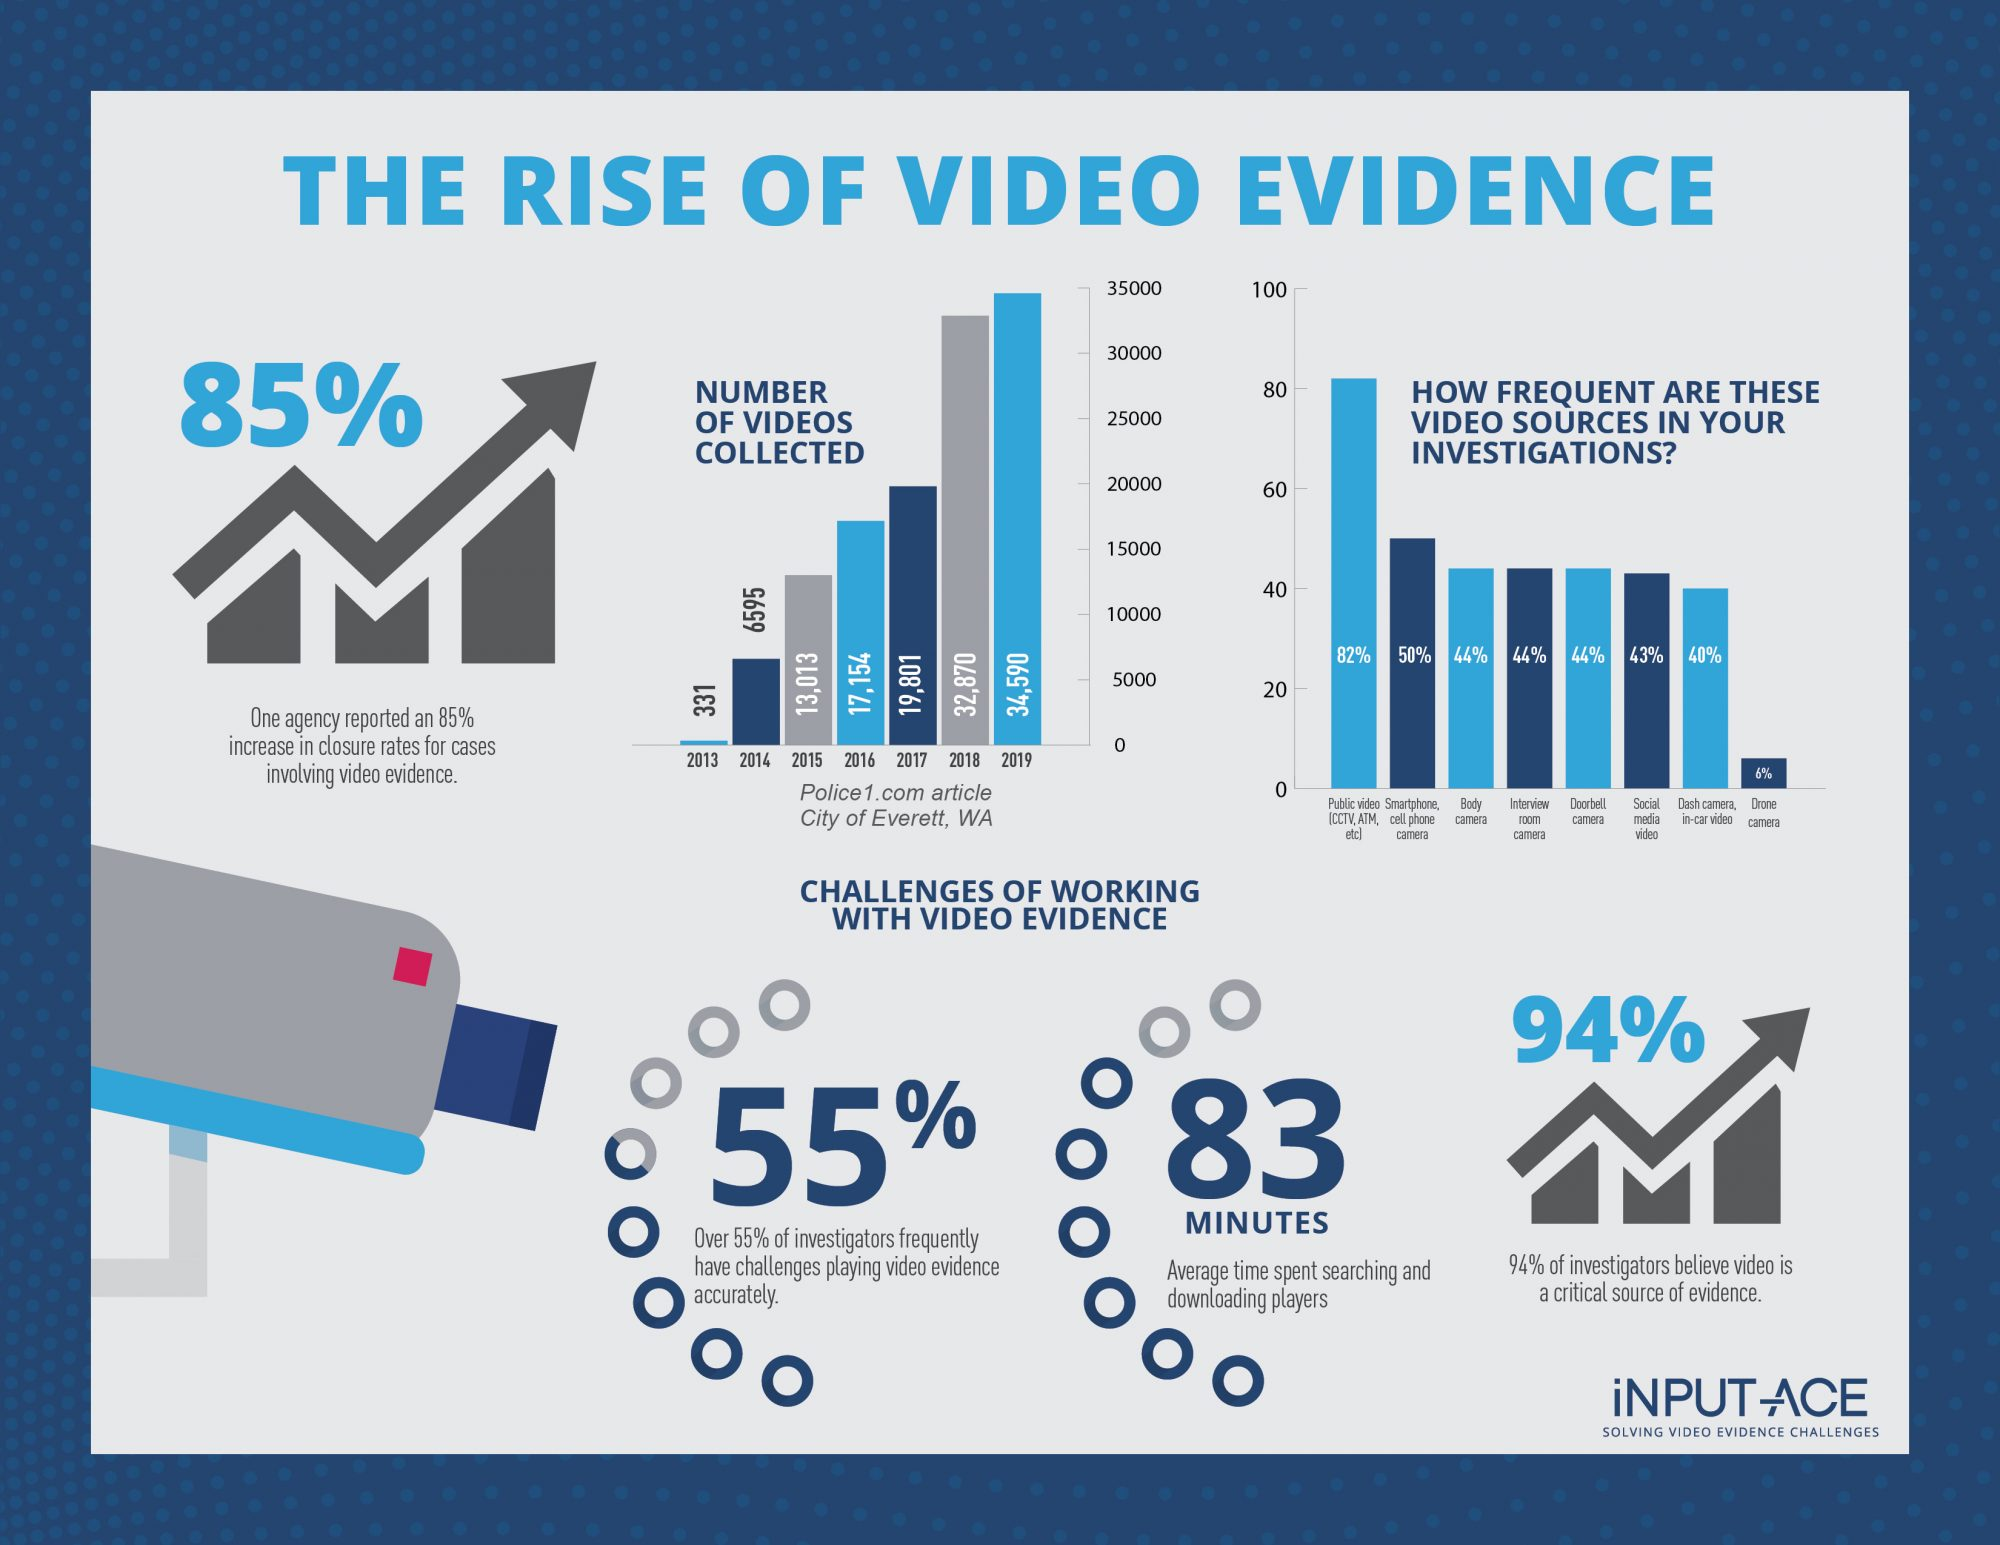 The Rise of Video Evidence - 2021 Trends in Video Evidence